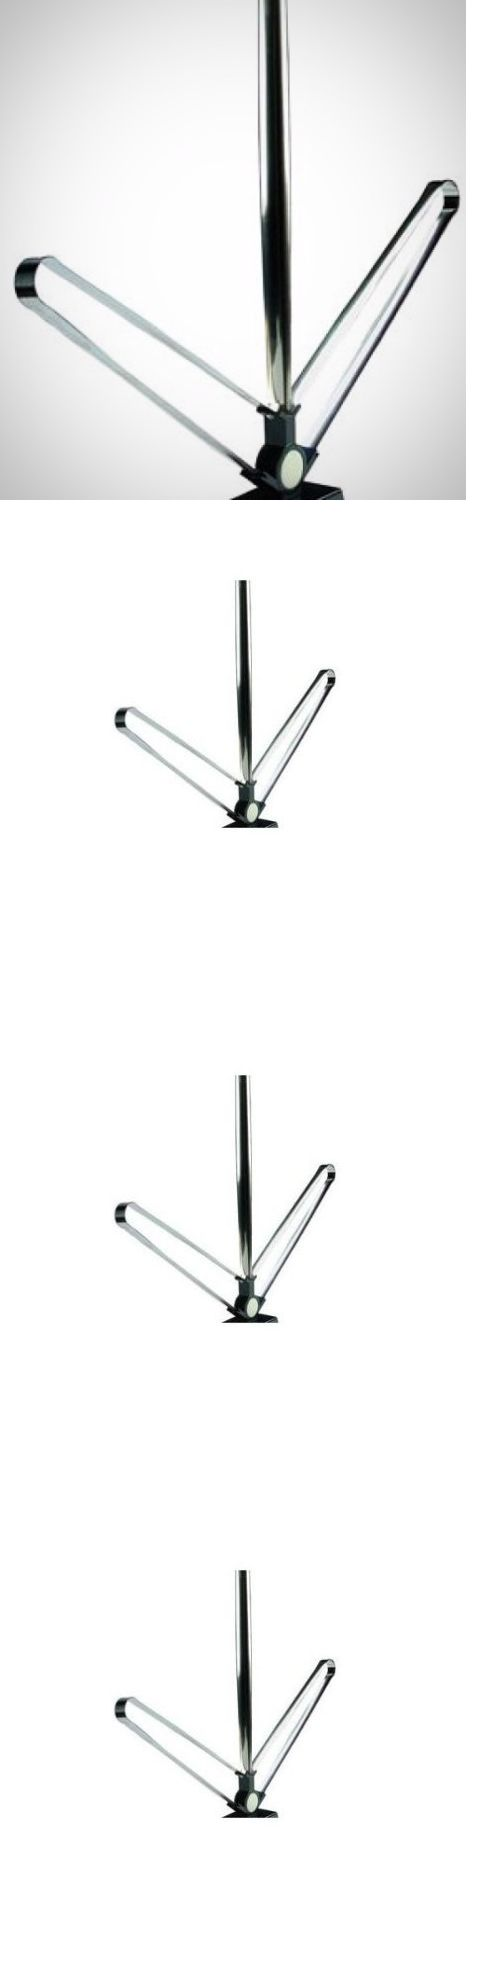 Radio Tuners: Magnum Dynalab Sr100 Indoor Fm Antenna Receives Local Hdtv Signal Due To Uhf -> BUY IT NOW ONLY: $59.92 on eBay!